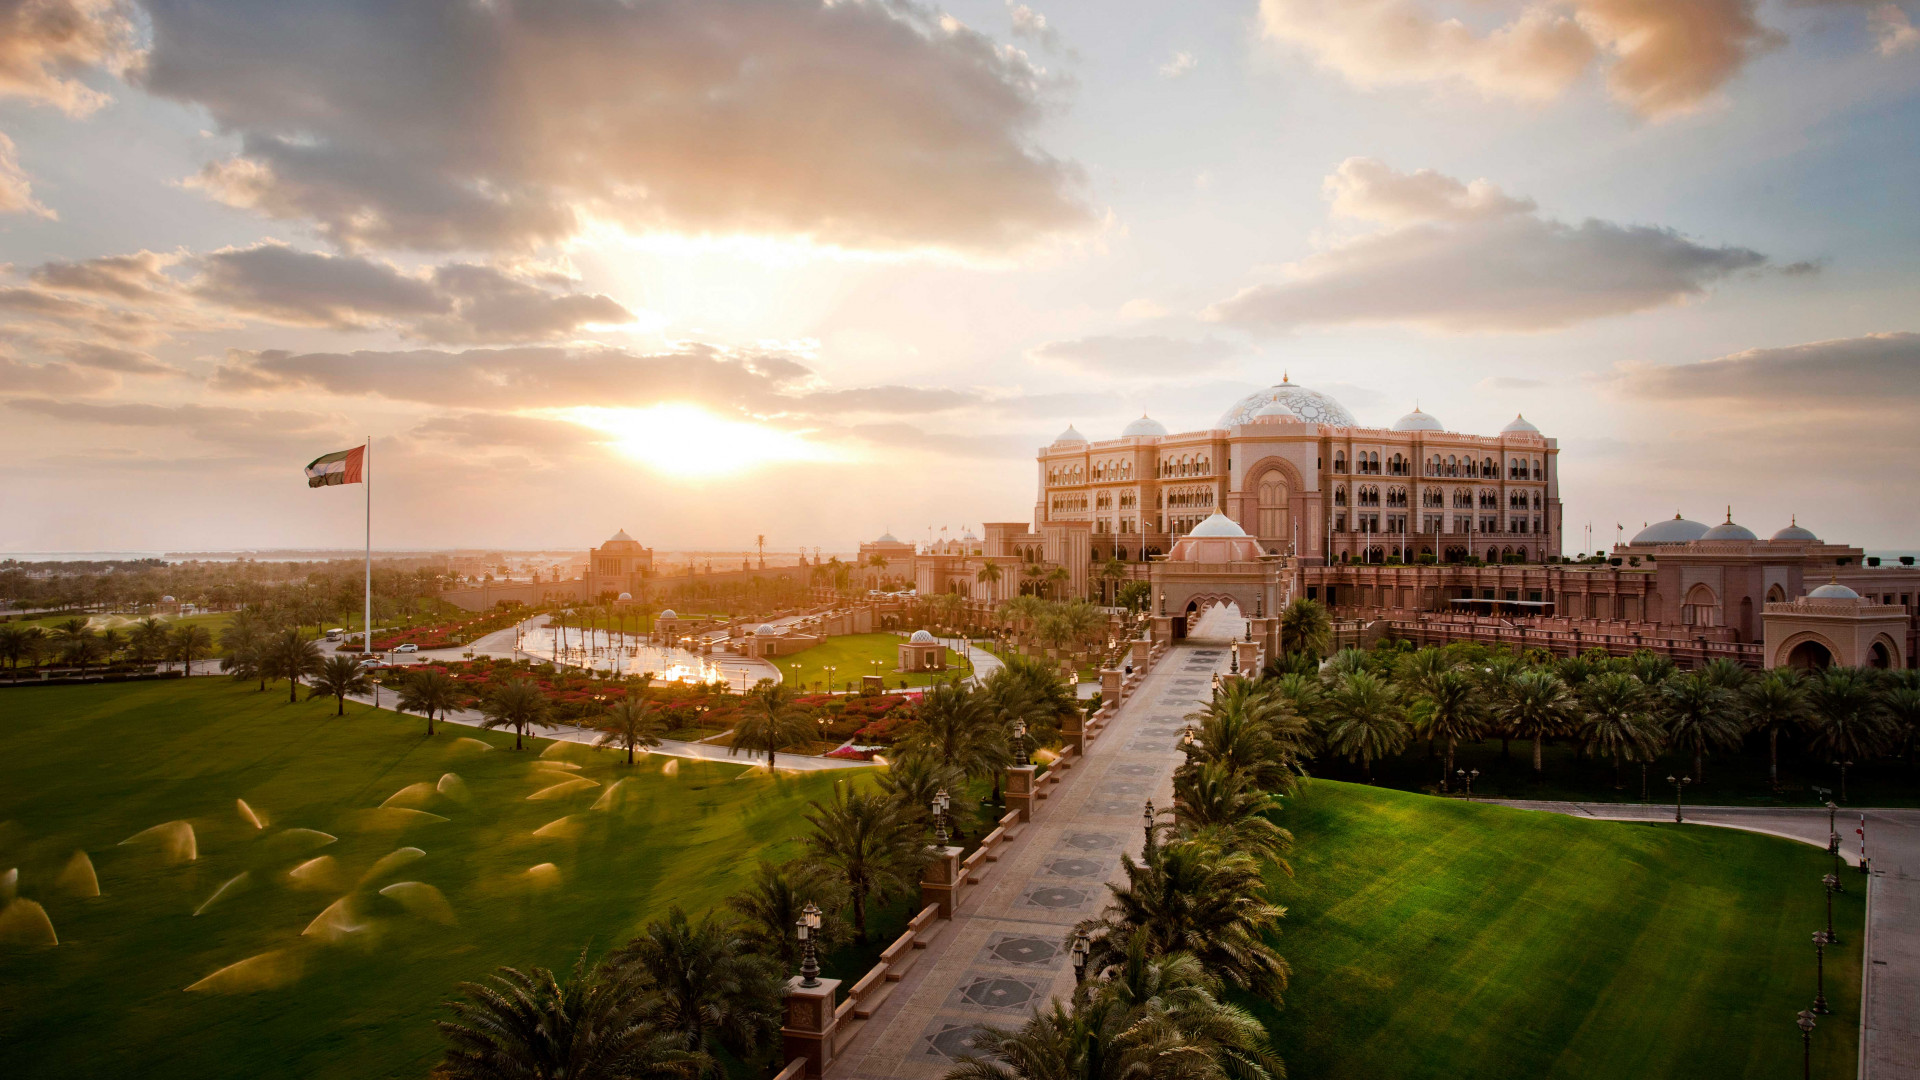 Exterior of Kempinski Emirates Palace in Abu Dhabi, UAE at sunset